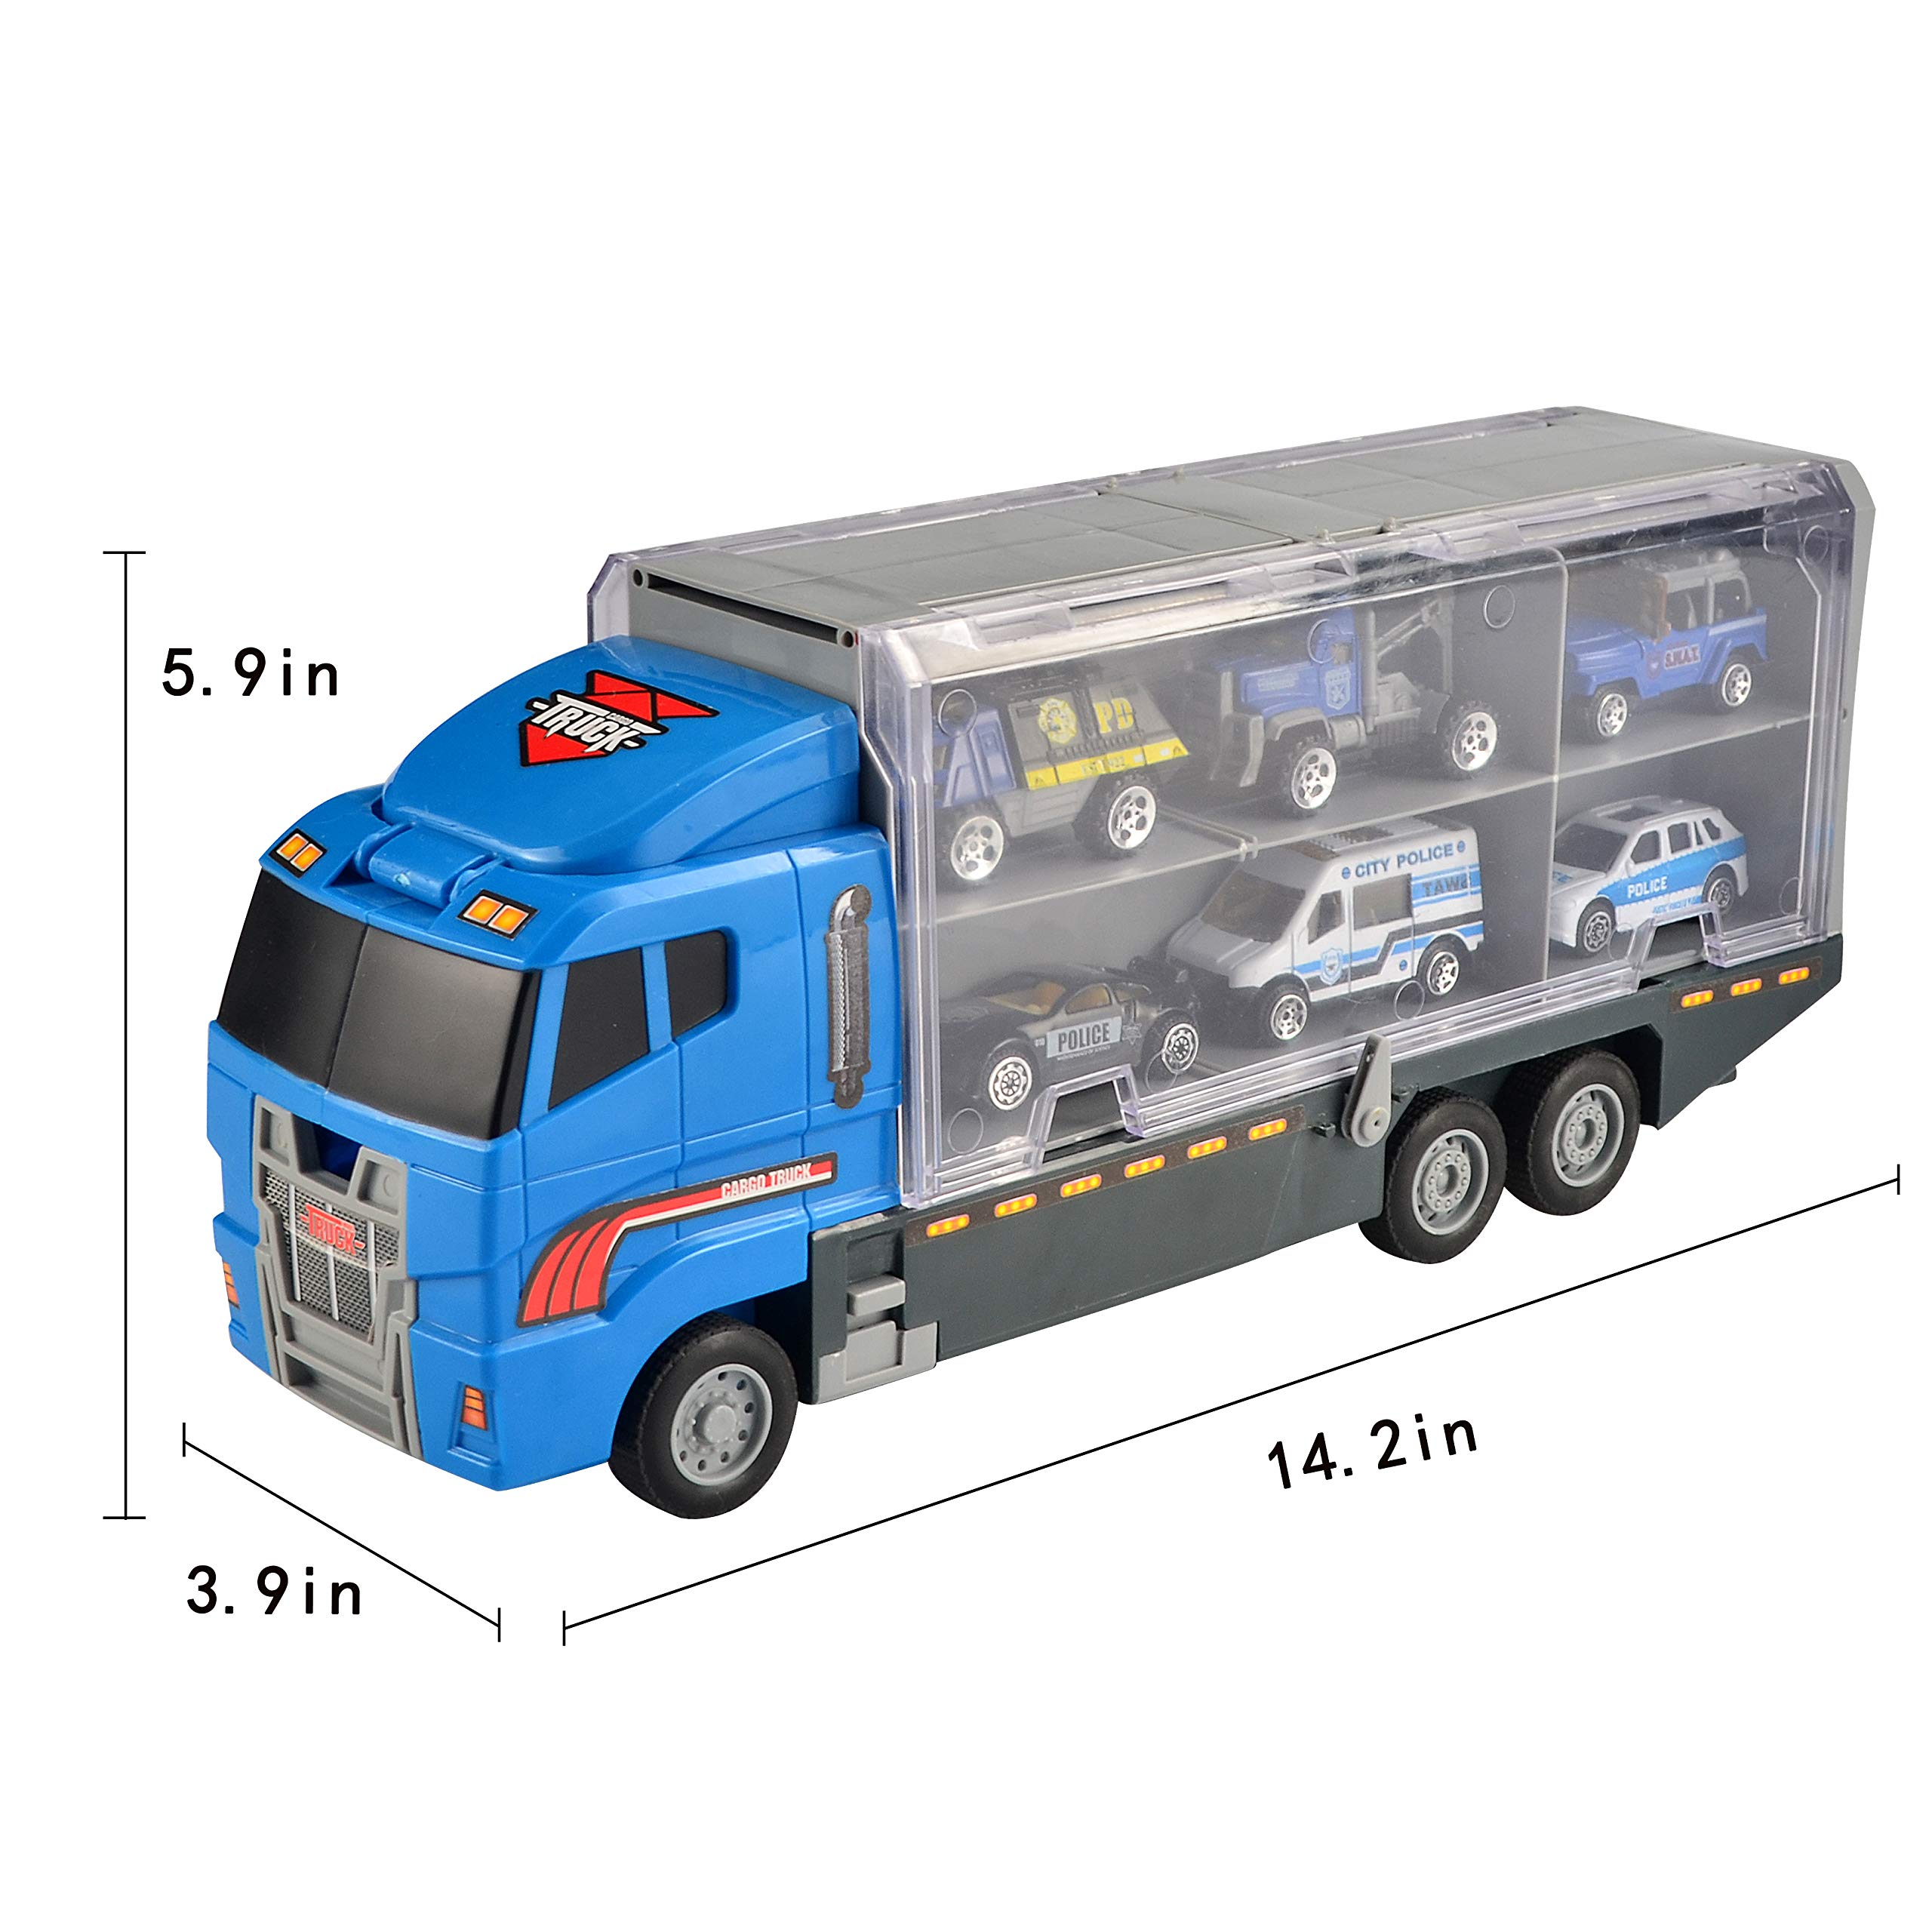 6 PCS JQGT Trading JQGT Diecast Police Cars Metal Playset Vehicle Models Collection Police Patrol Jeep Swat Truck Toy for Kids